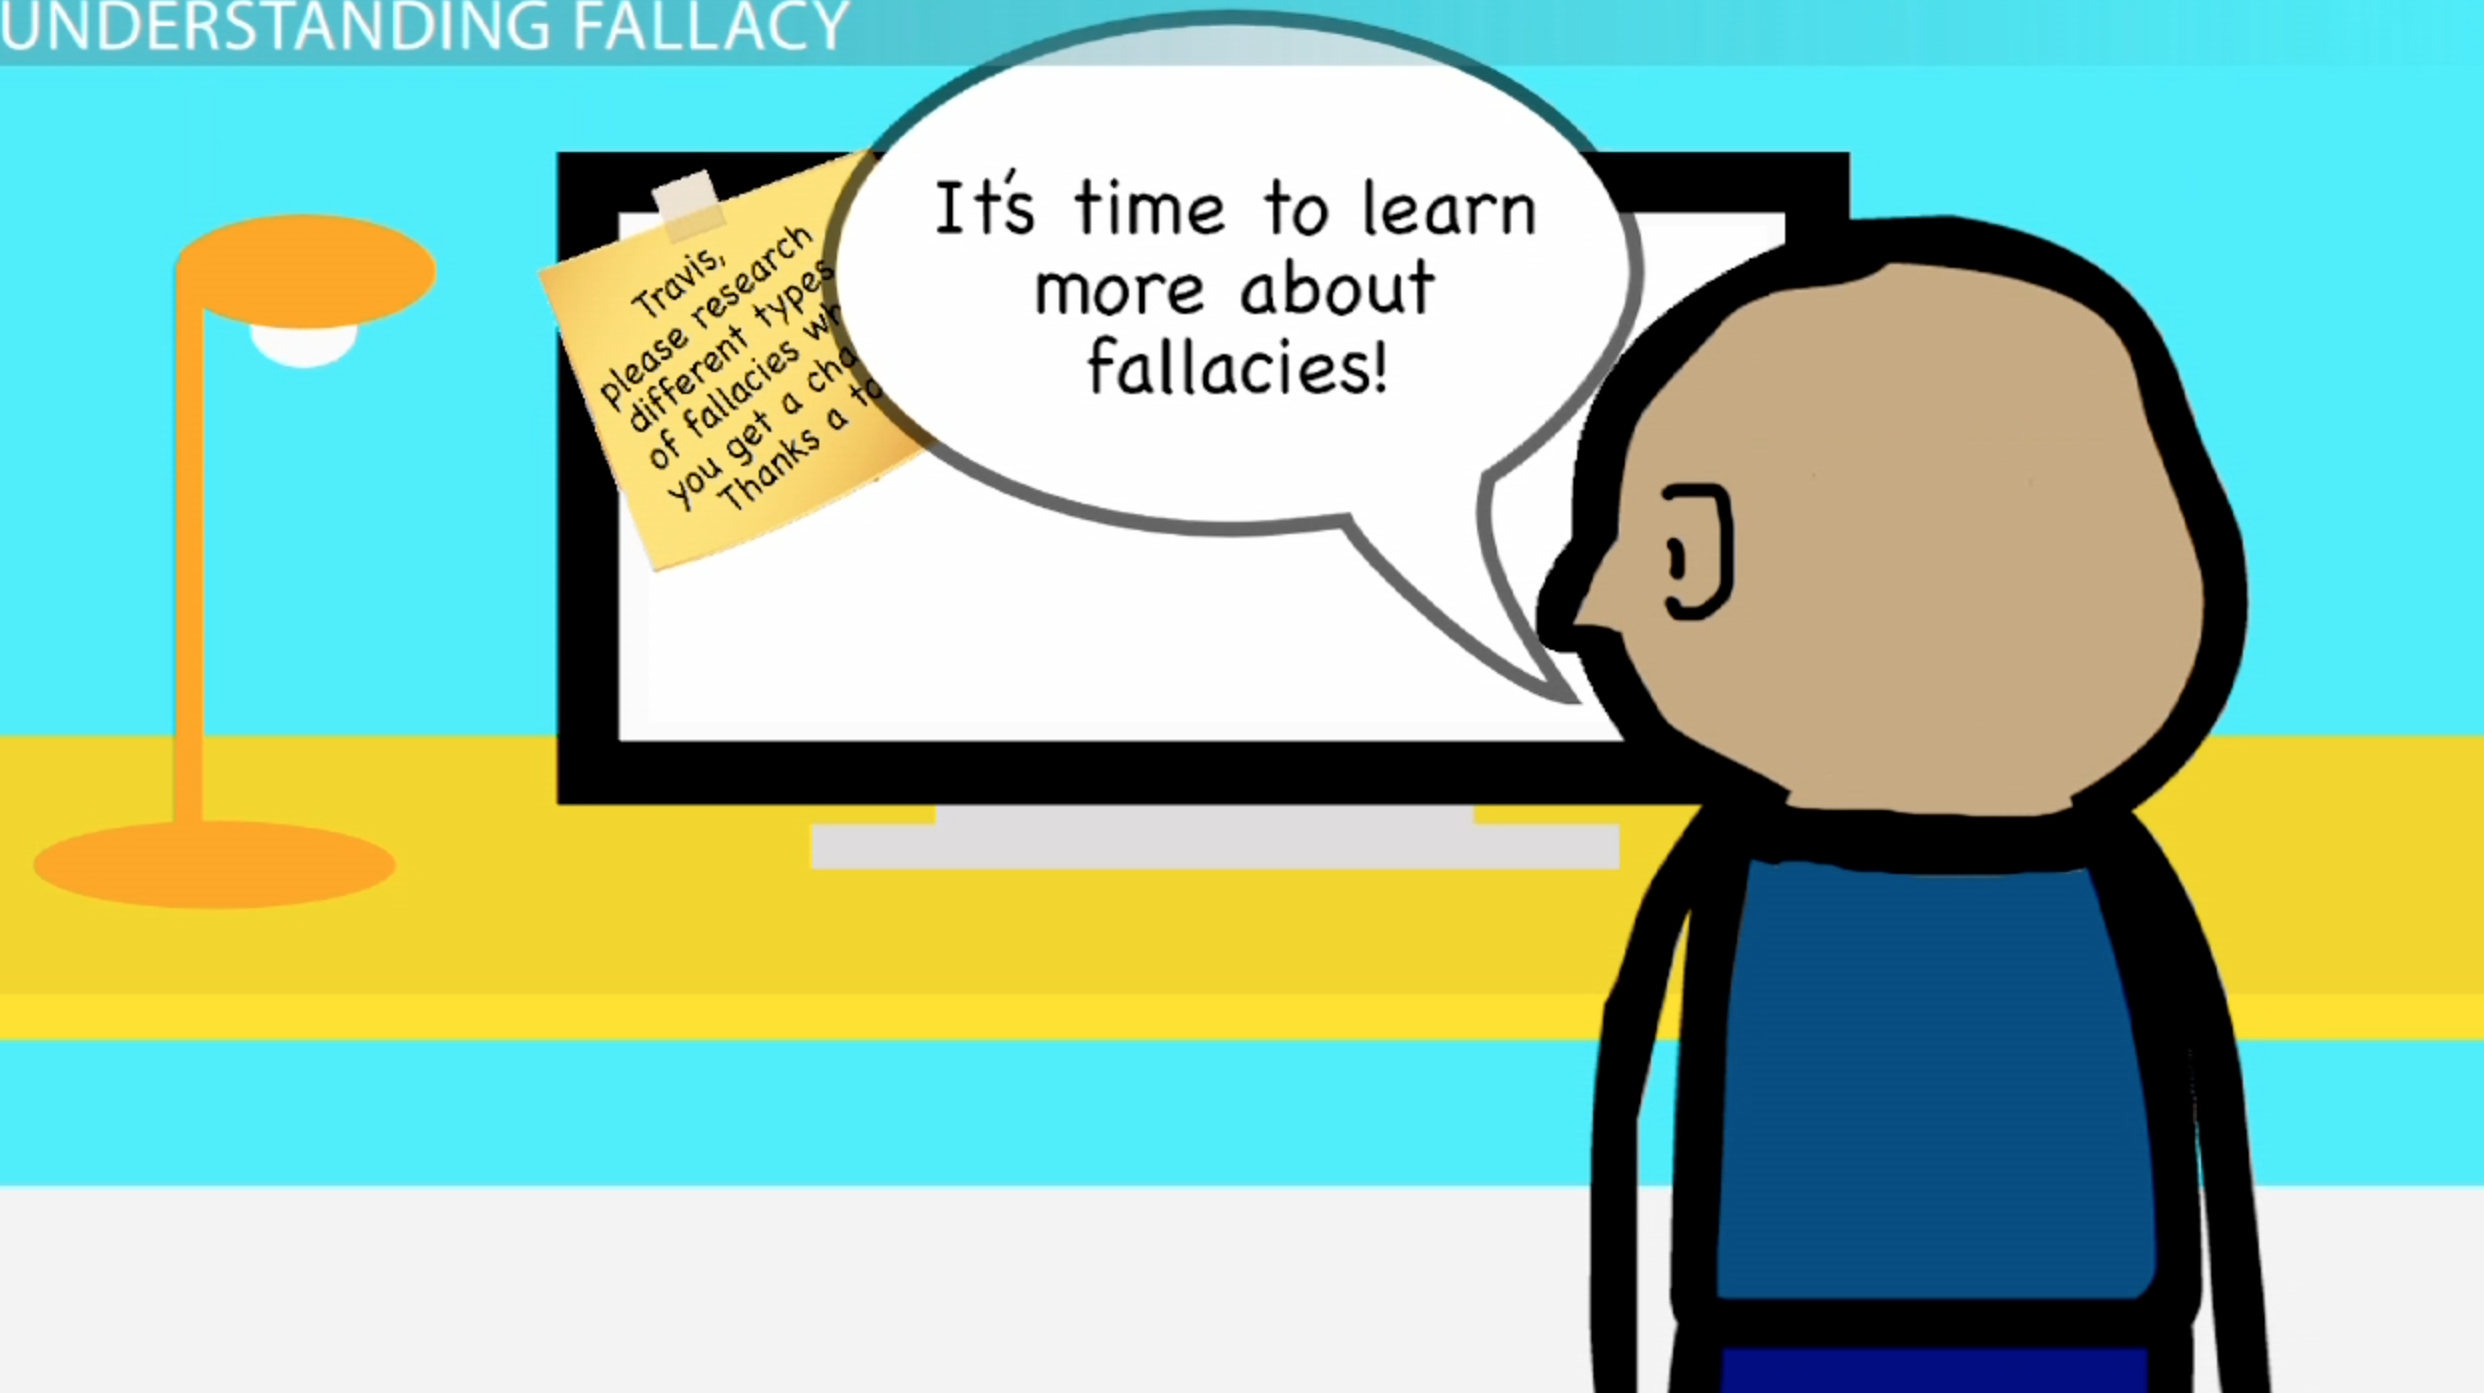 what are logical fallacies define identify and avoid them understanding fallacy impact on reasoning